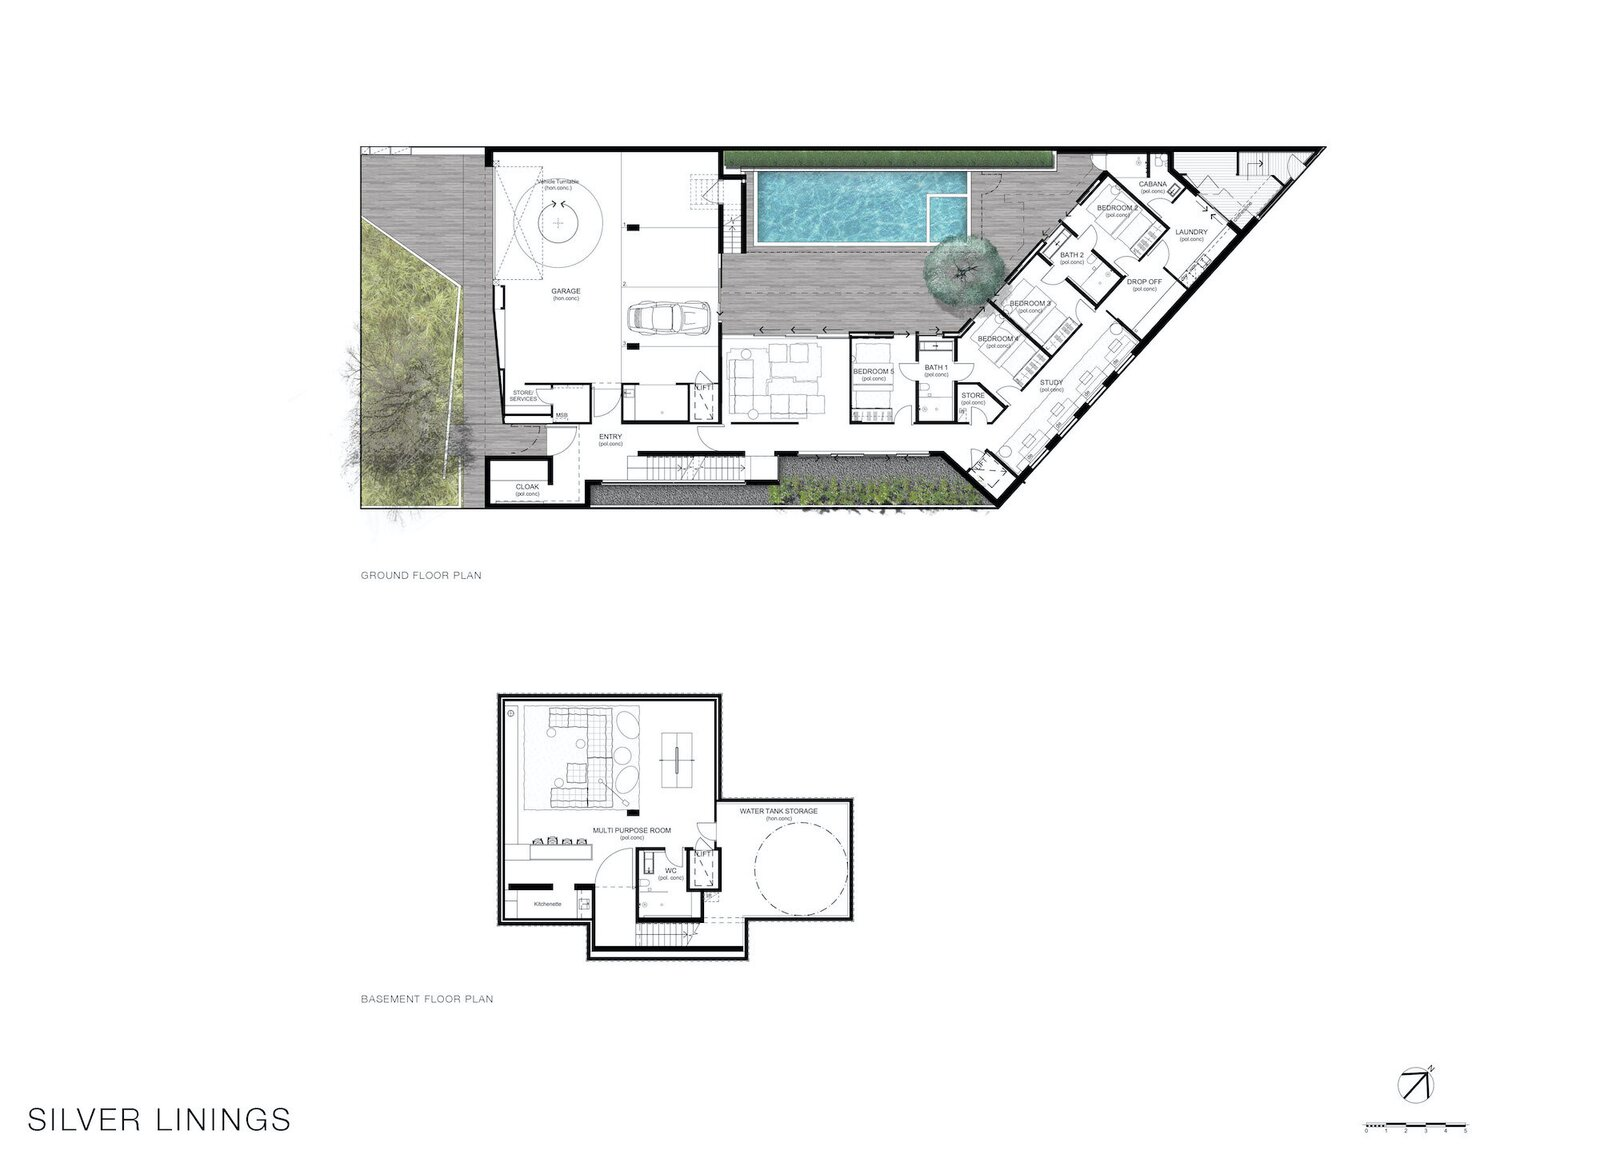 Basement and ground-floor plans of Silver Linings by Rachcoff Vella Architecture